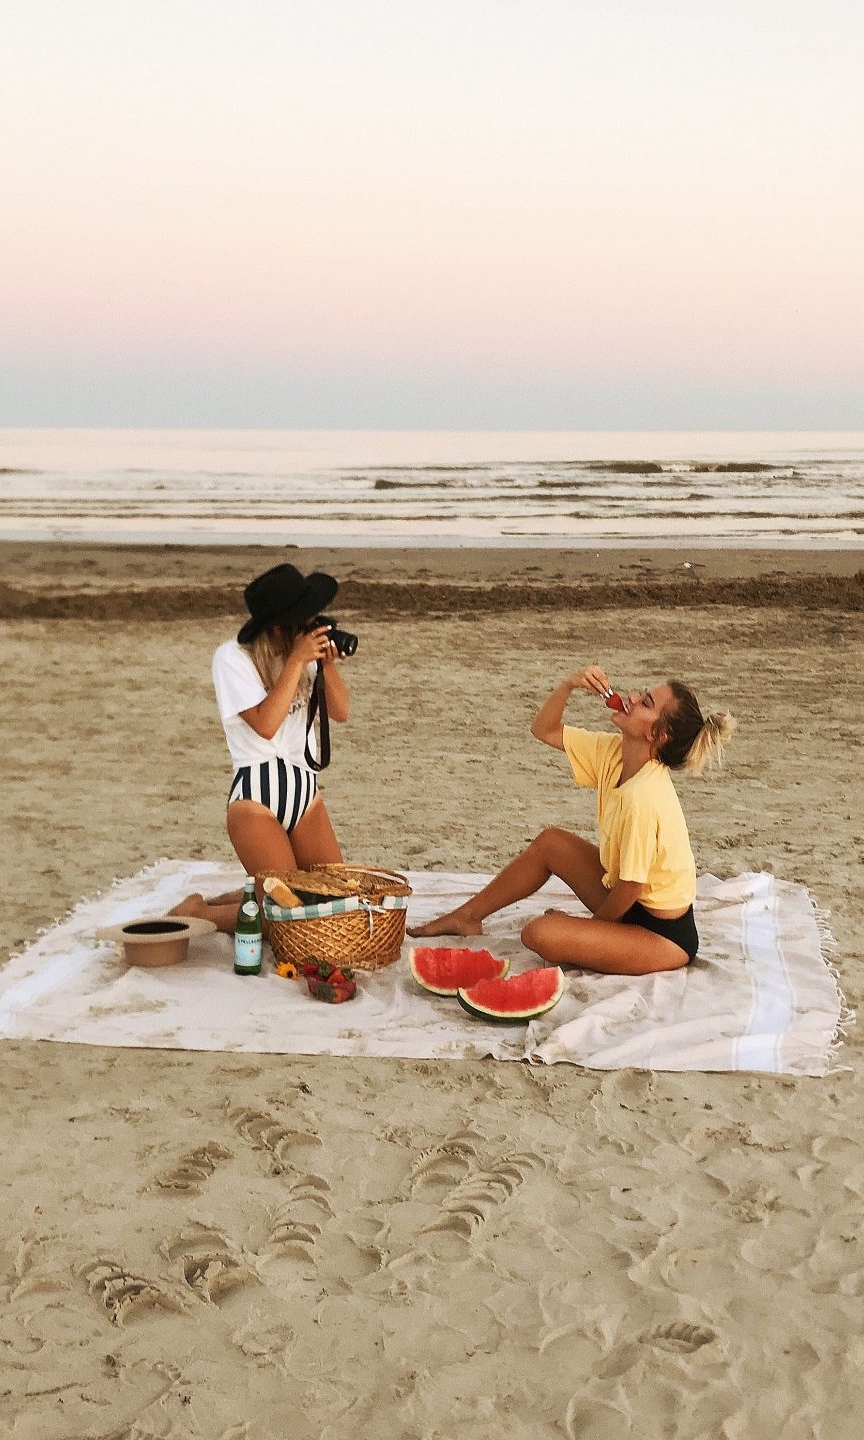 We encourage our brand partners to be flexible about the platform their product is featured on, and really listen to their influencer partner. - Photo courtesy of Tess &Sarah / @tess_and_sarah